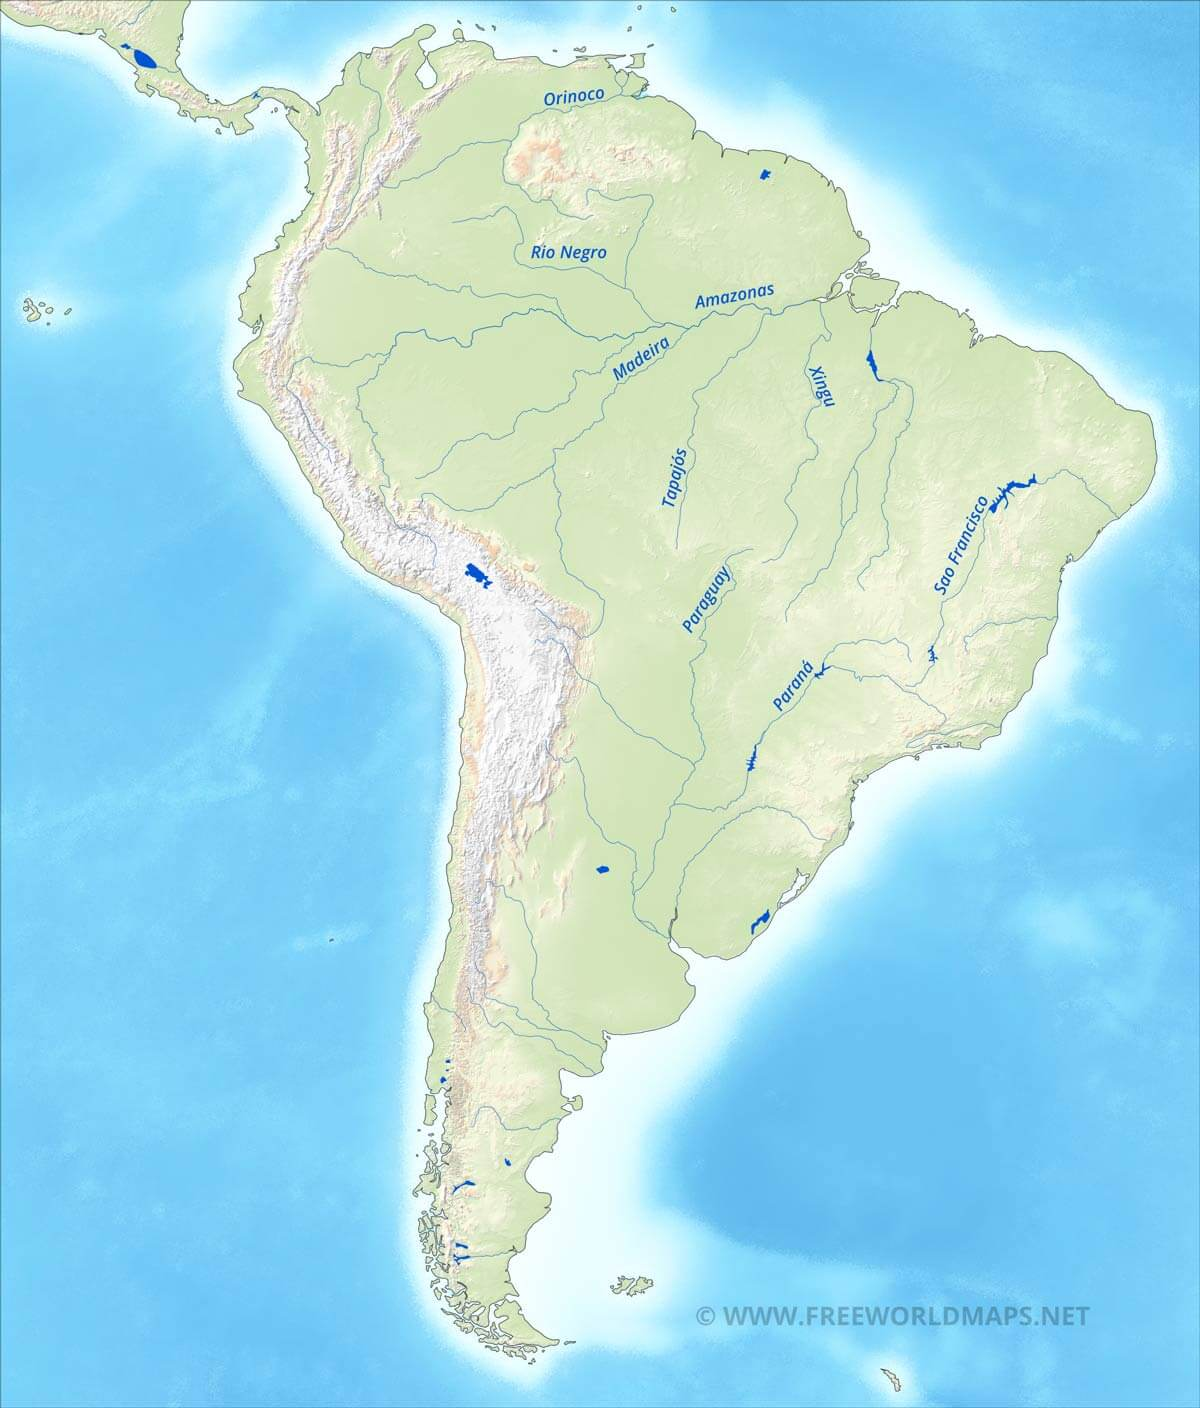 south america physical map u2013 freeworldmaps net